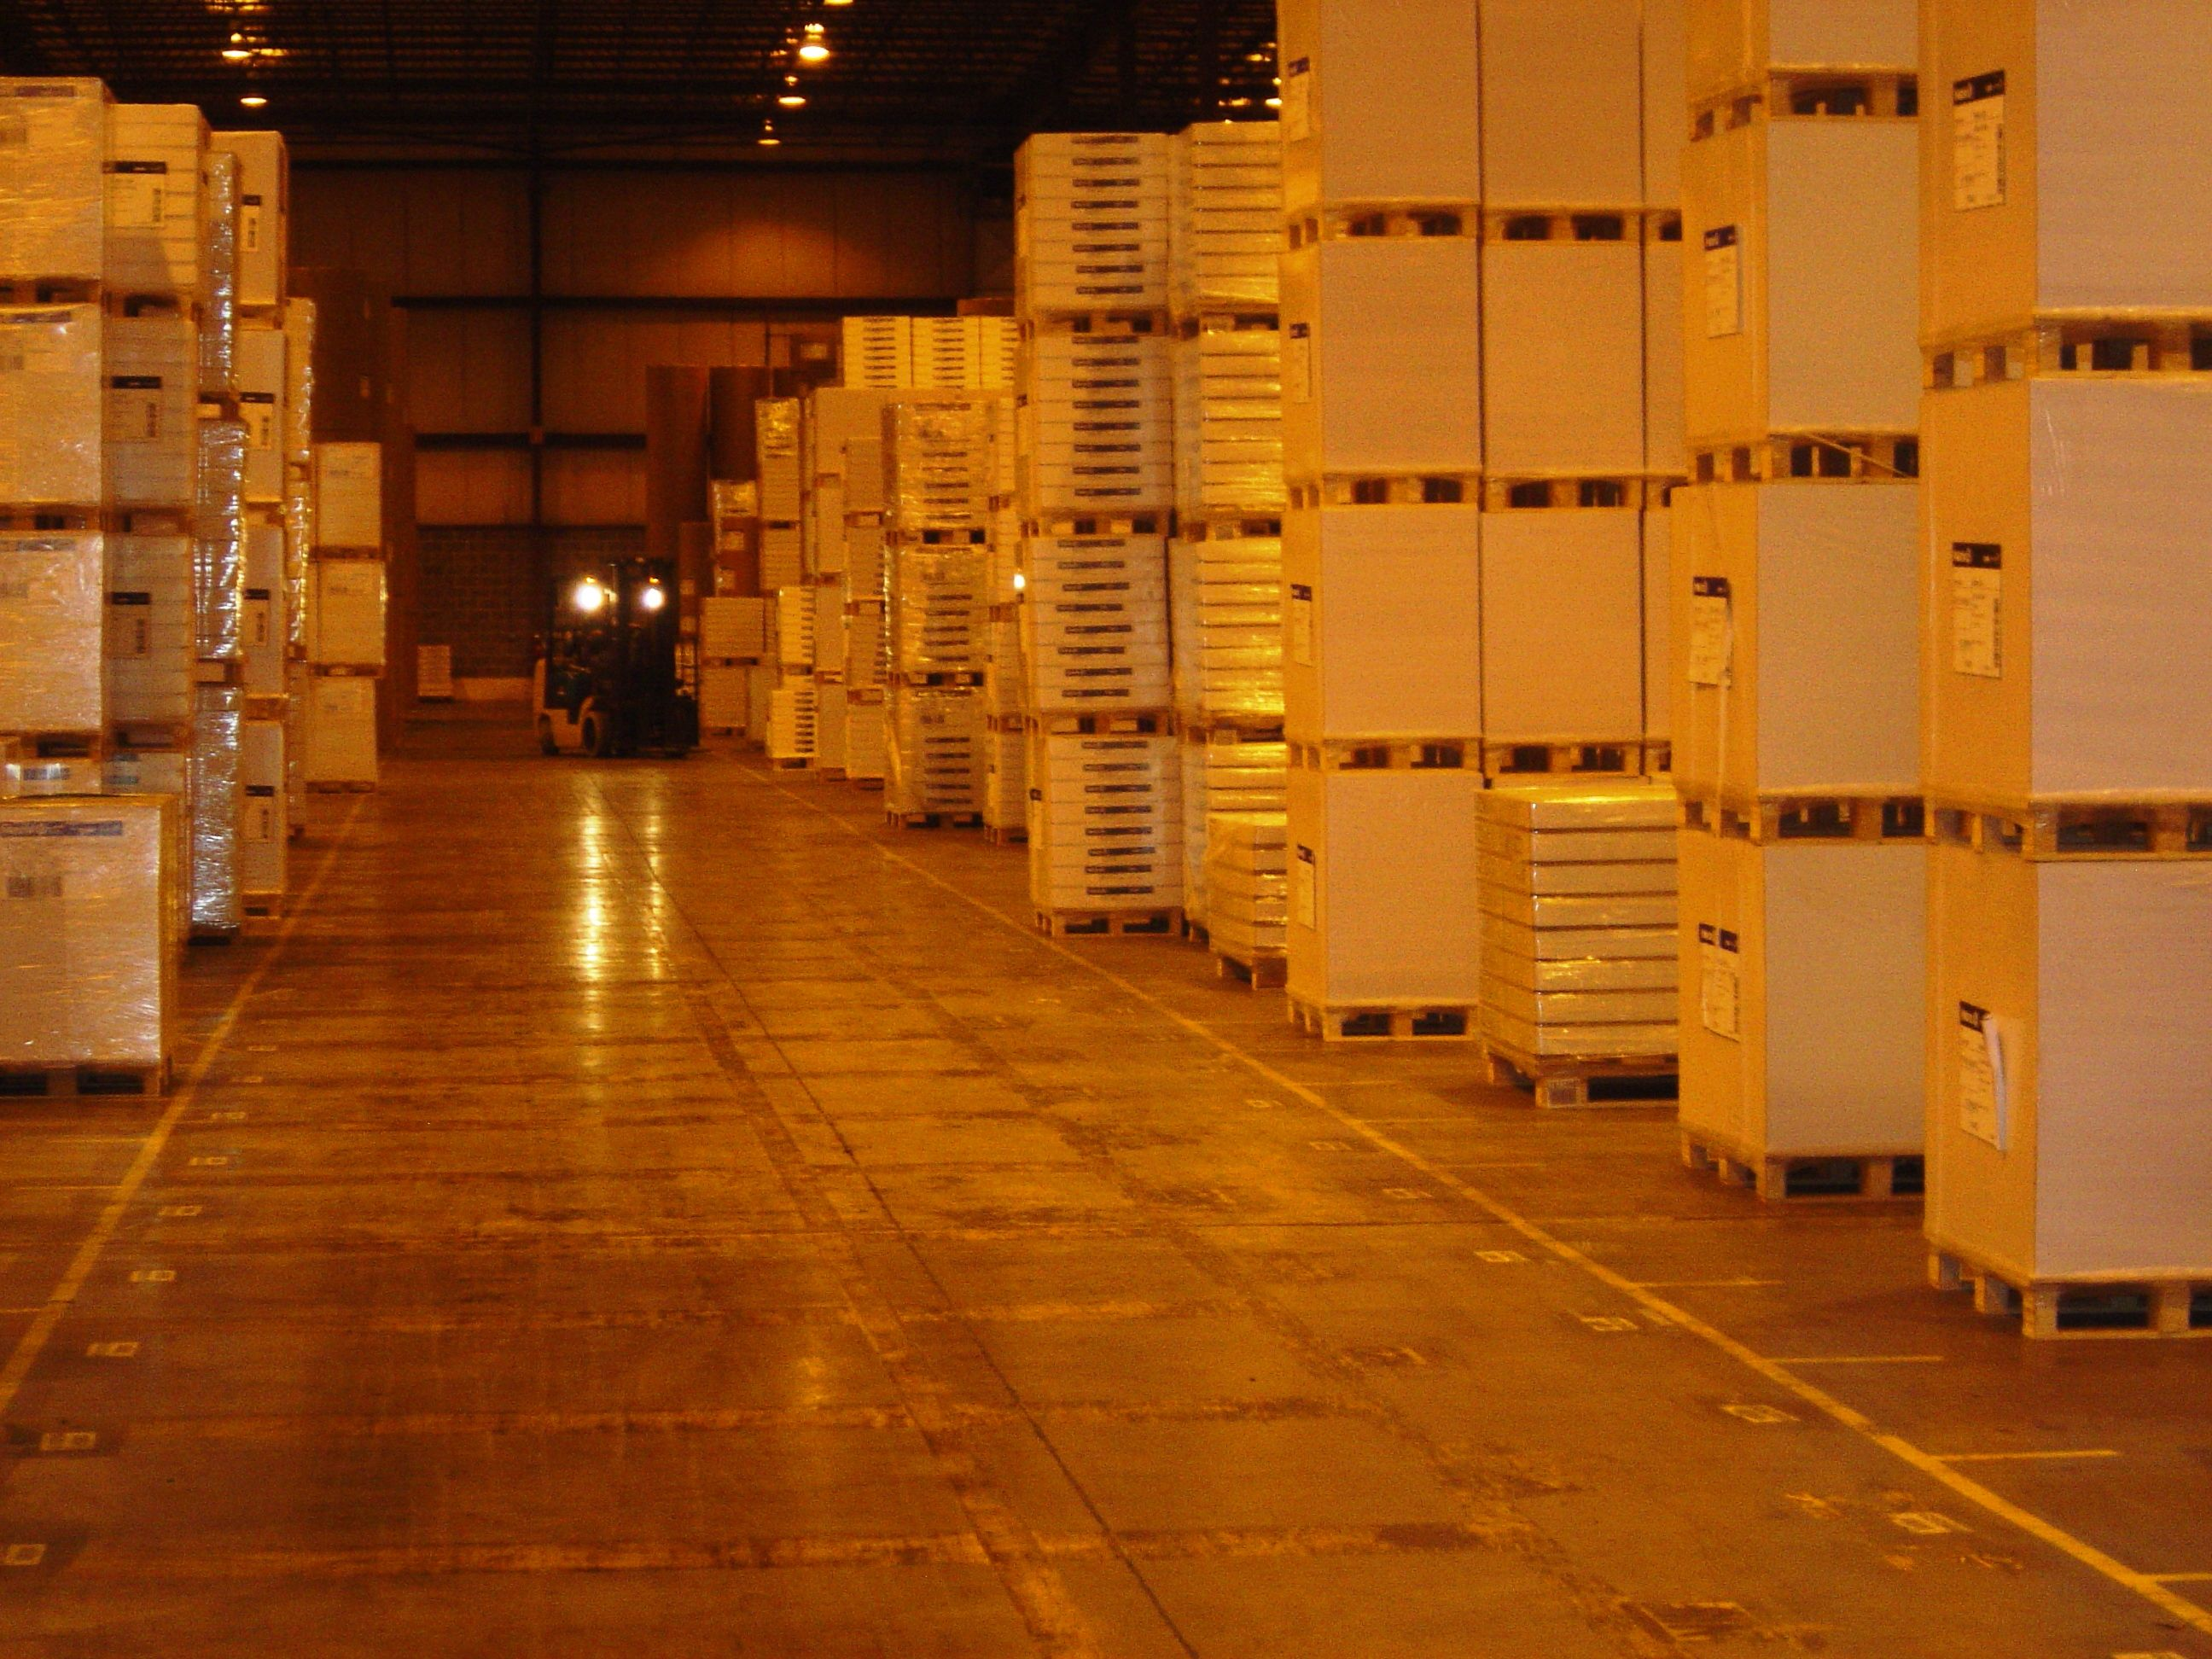 20th November 2014 Logistics Companies Looking For Funds To